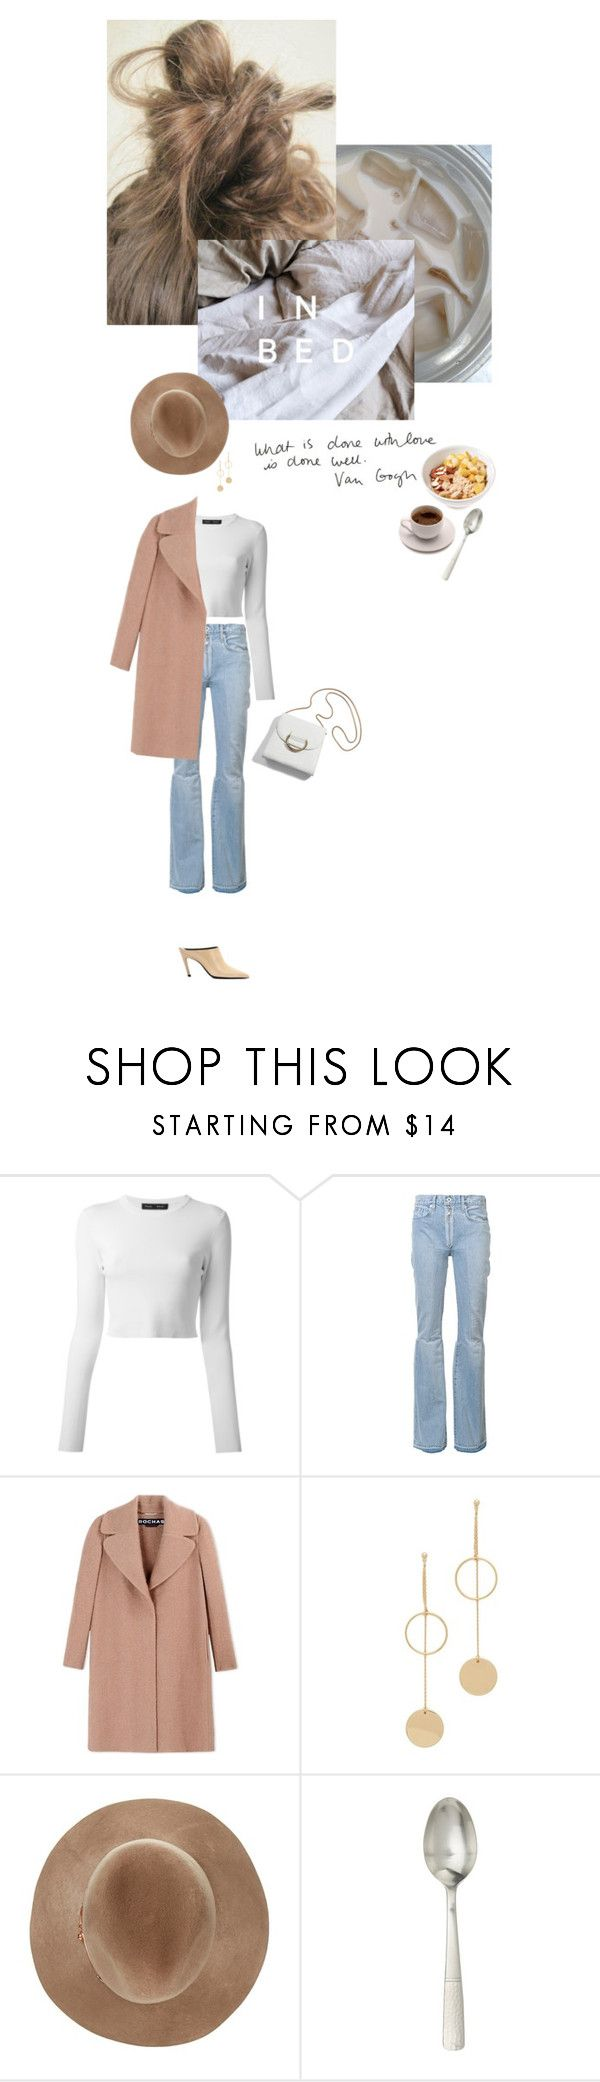 """Agatha"" by loub917 ❤ liked on Polyvore featuring Proenza Schouler, Off-White, Rochas, Vous Etes, Cloverpost, Eugenia Kim, Juliska and Balenciaga"